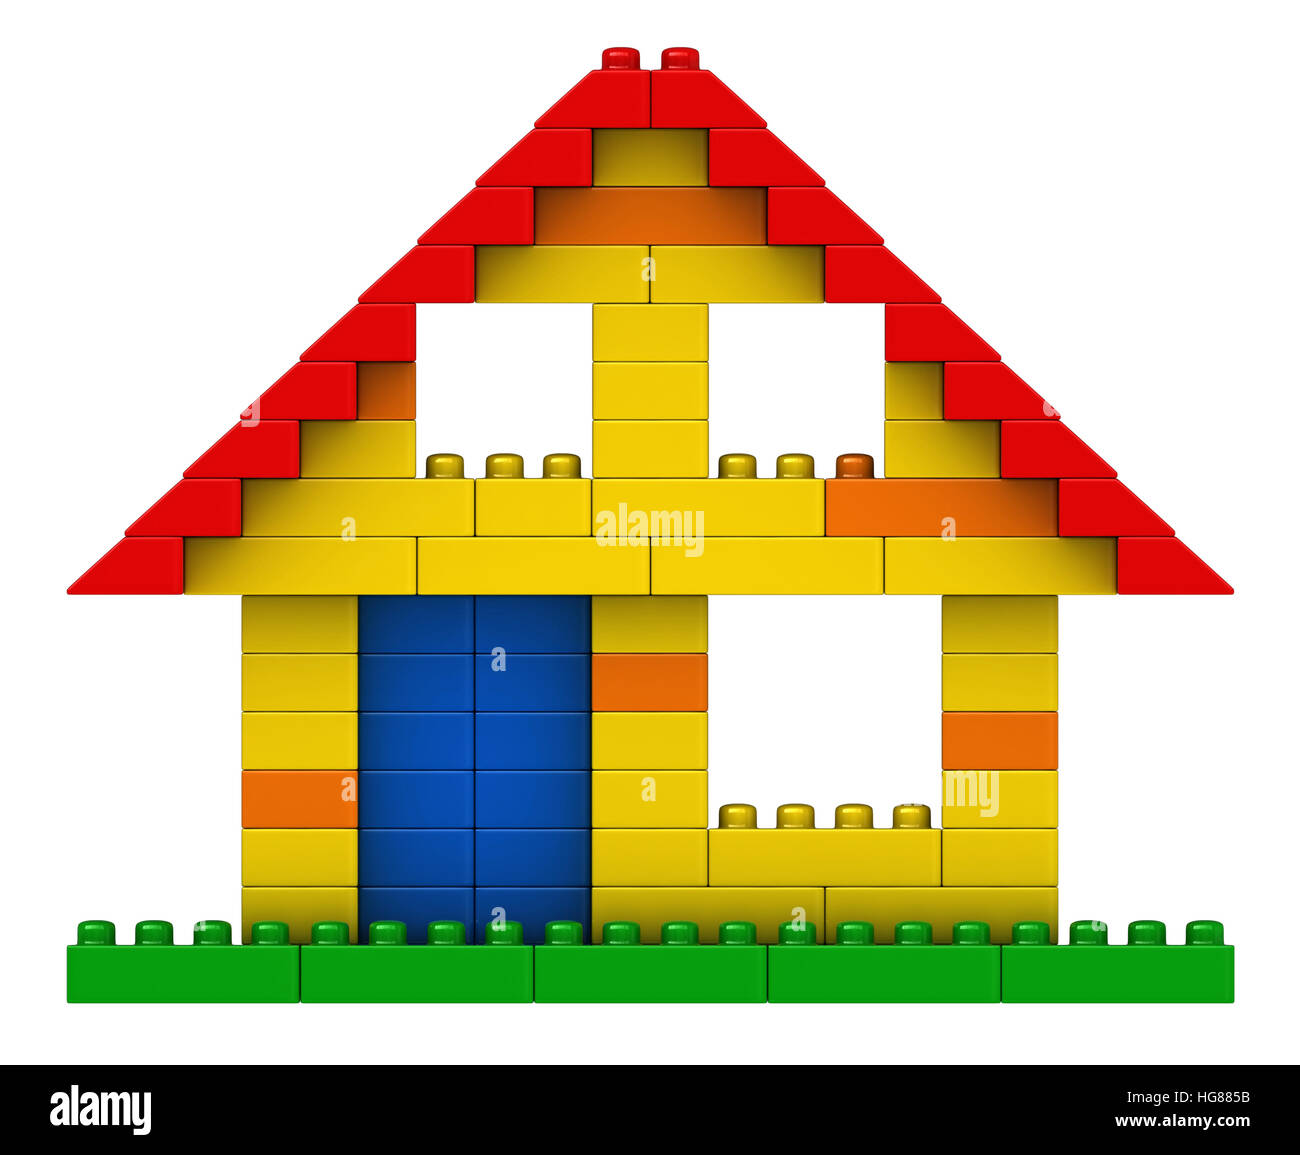 child lego stockfotos child lego bilder seite 10 alamy. Black Bedroom Furniture Sets. Home Design Ideas